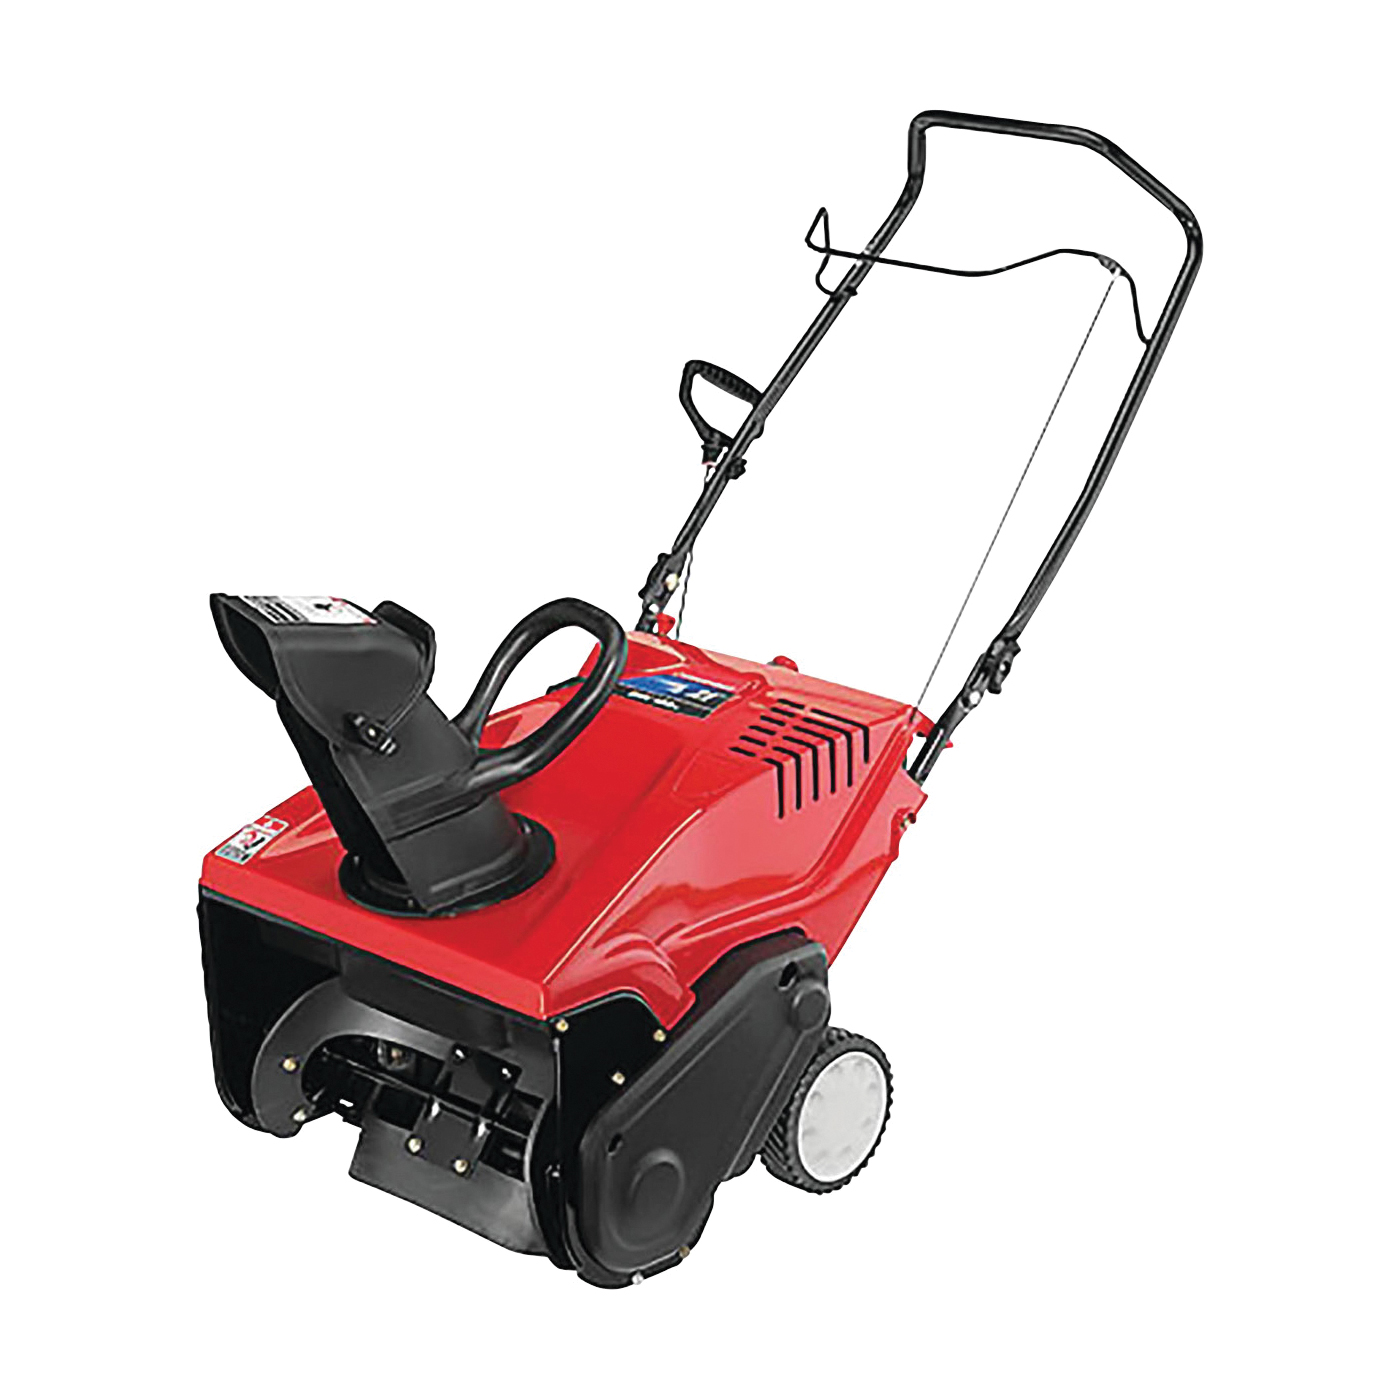 Picture of MTD 31AS2S5G766 Snow Thrower, Gasoline, 123 cc Engine Displacement, OHV Engine, 1 -Stage, Electric Start